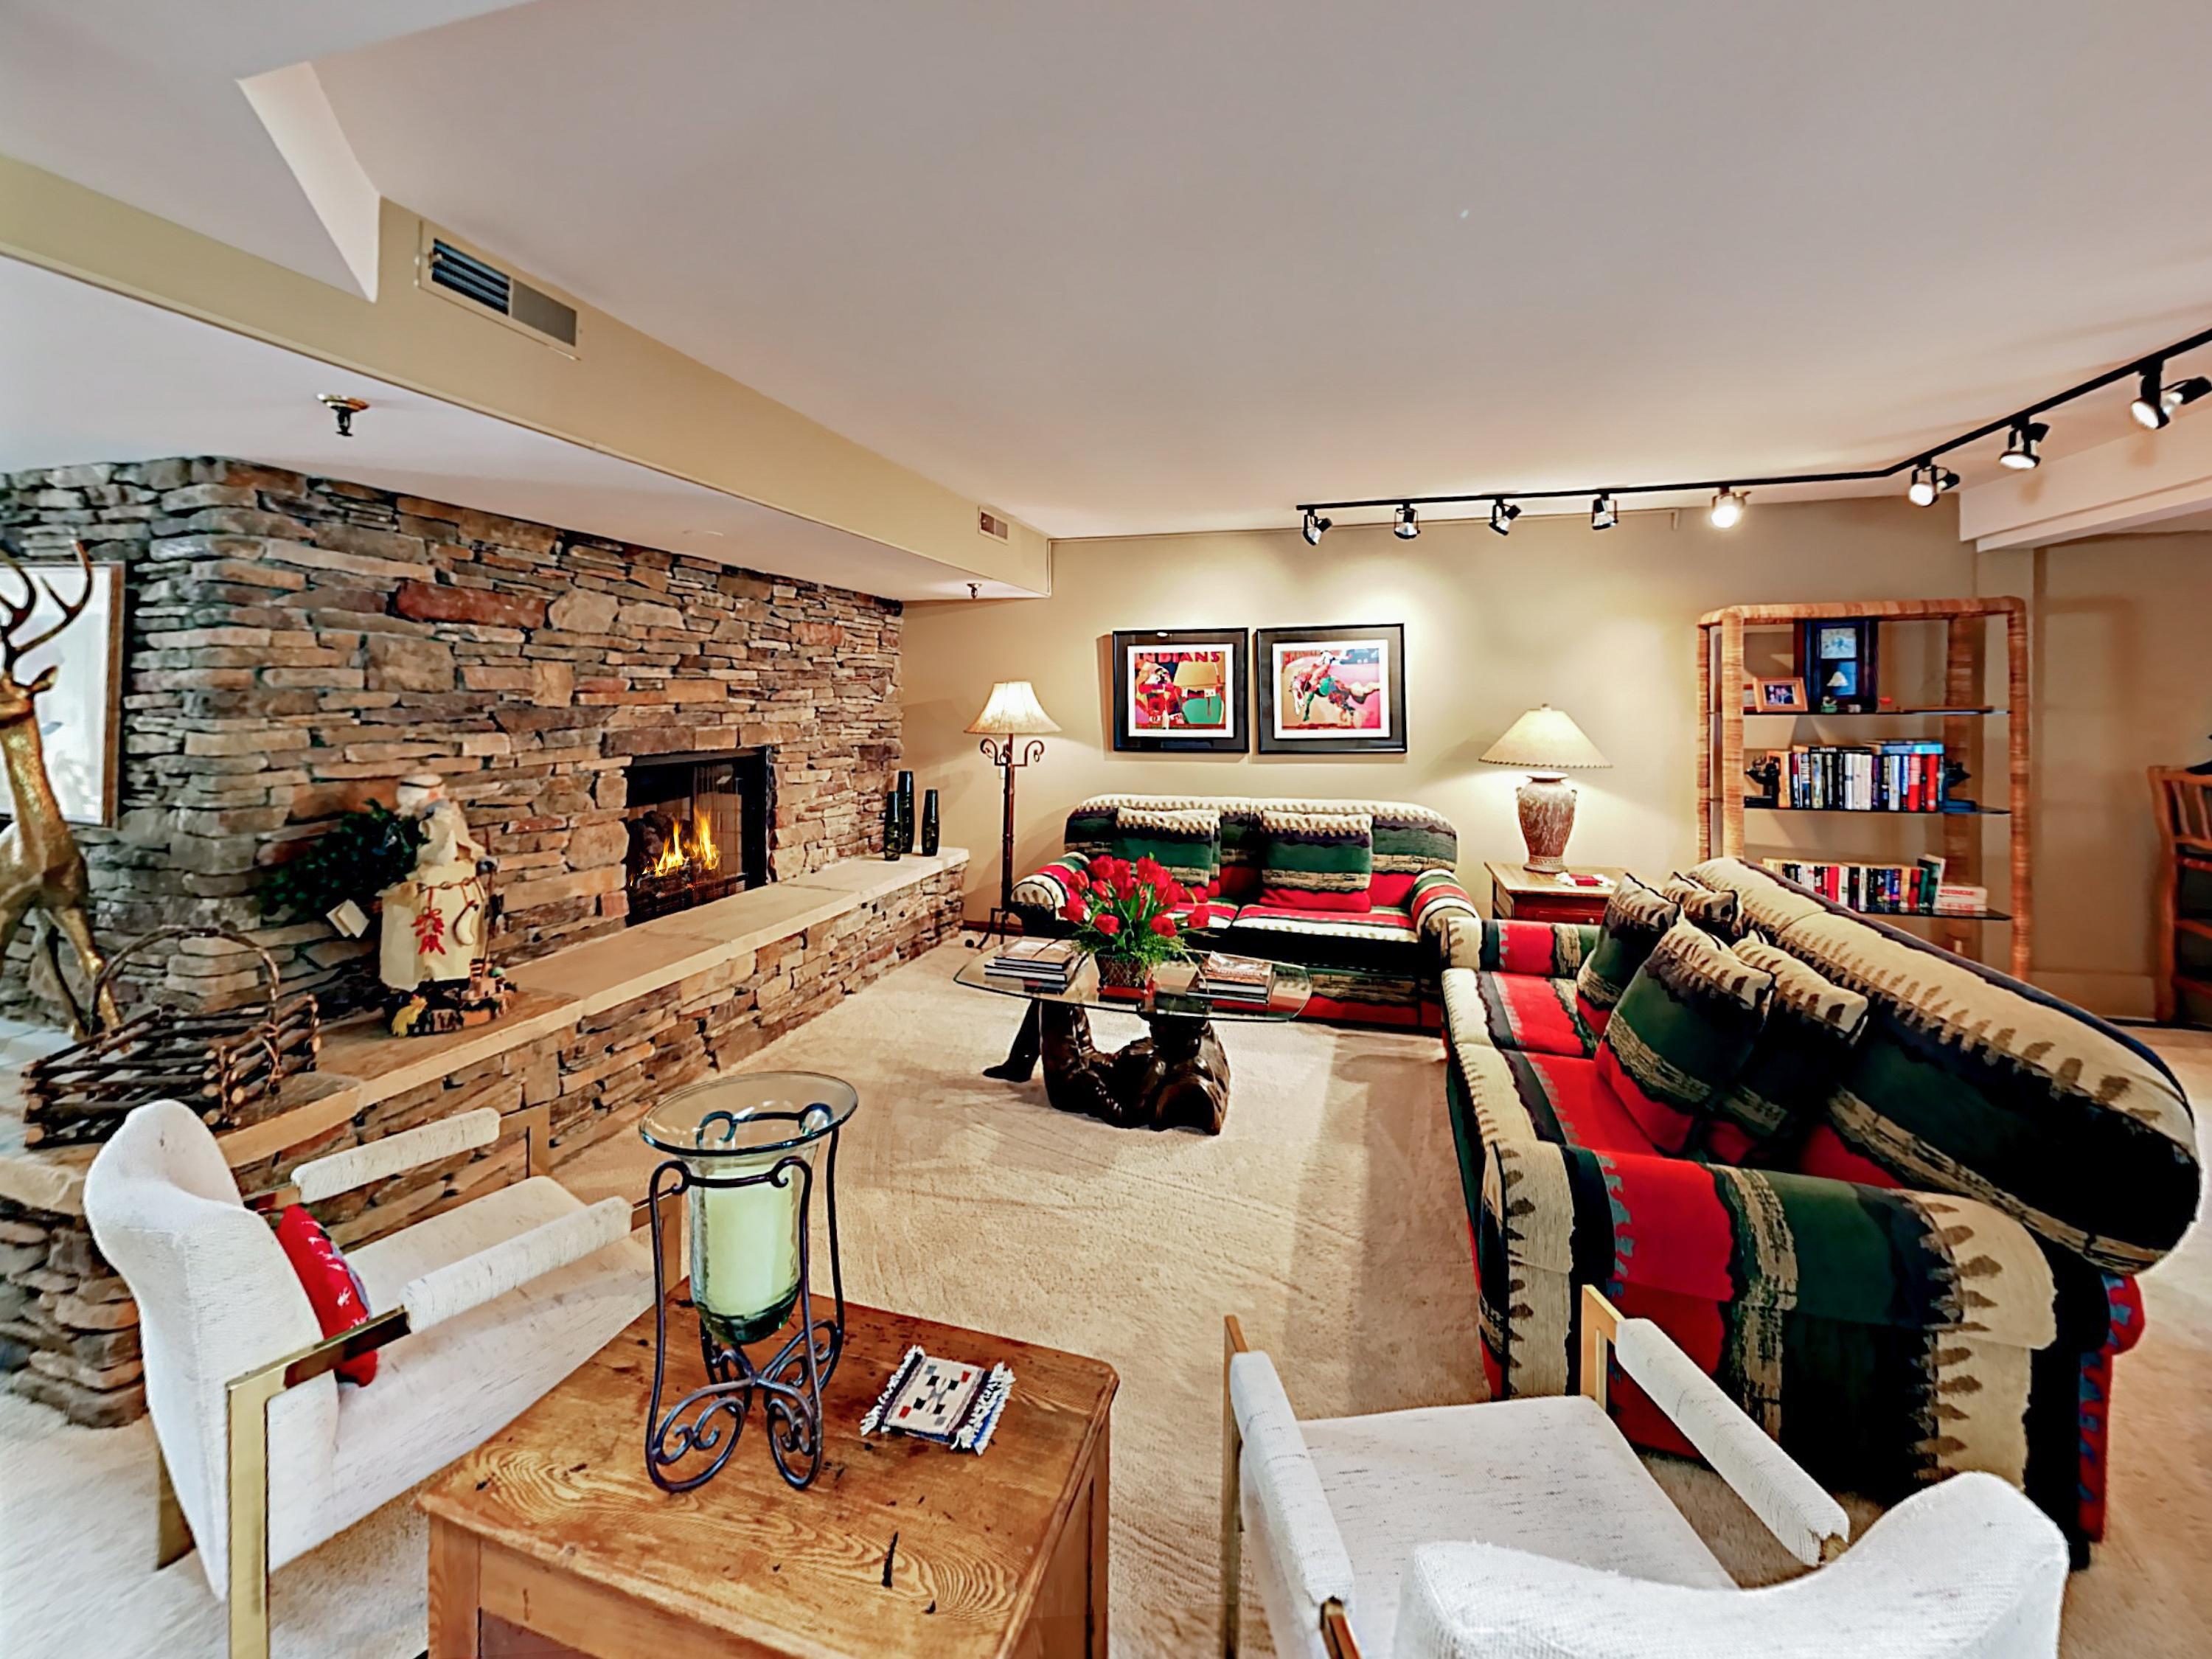 Stretch out on 2 sofas and armchairs in the second living room next to the flickering fireplace.